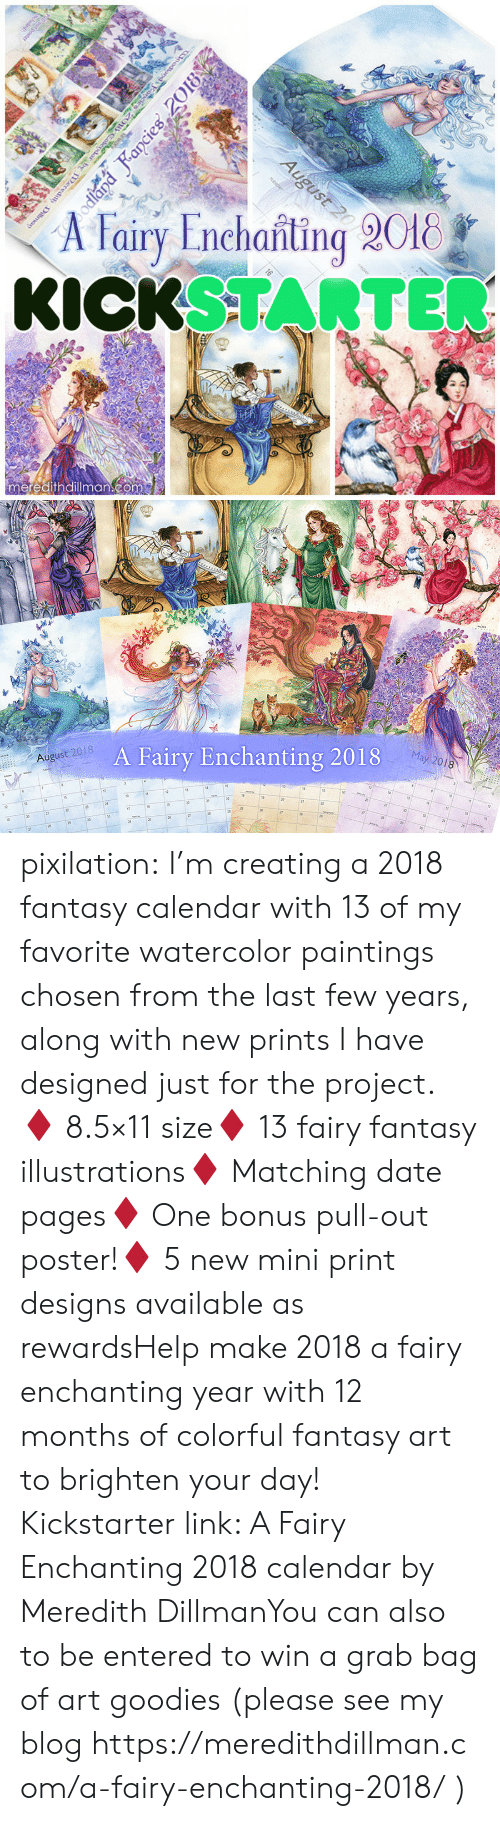 goodies: A Fairy Enchanting 2018  KICKSTARTE  meredithdillmancom   August 2018  A Fairy Enchanting 2018  May 2018  13  21 pixilation: I'm creating a 2018 fantasy calendar with 13 of my favorite watercolor paintings chosen from the last few years, along with new prints I have designed just for the project.♦ 8.5×11 size♦ 13 fairy  fantasy illustrations♦ Matching date pages♦ One bonus pull-out poster!♦ 5 new mini print designs available as rewardsHelp make 2018 a fairy enchanting year with 12 months of colorful fantasy art to brighten your day! Kickstarter link: A Fairy Enchanting 2018 calendar by Meredith DillmanYou can also to be entered to win a grab bag of art goodies (please see my bloghttps://meredithdillman.com/a-fairy-enchanting-2018/)